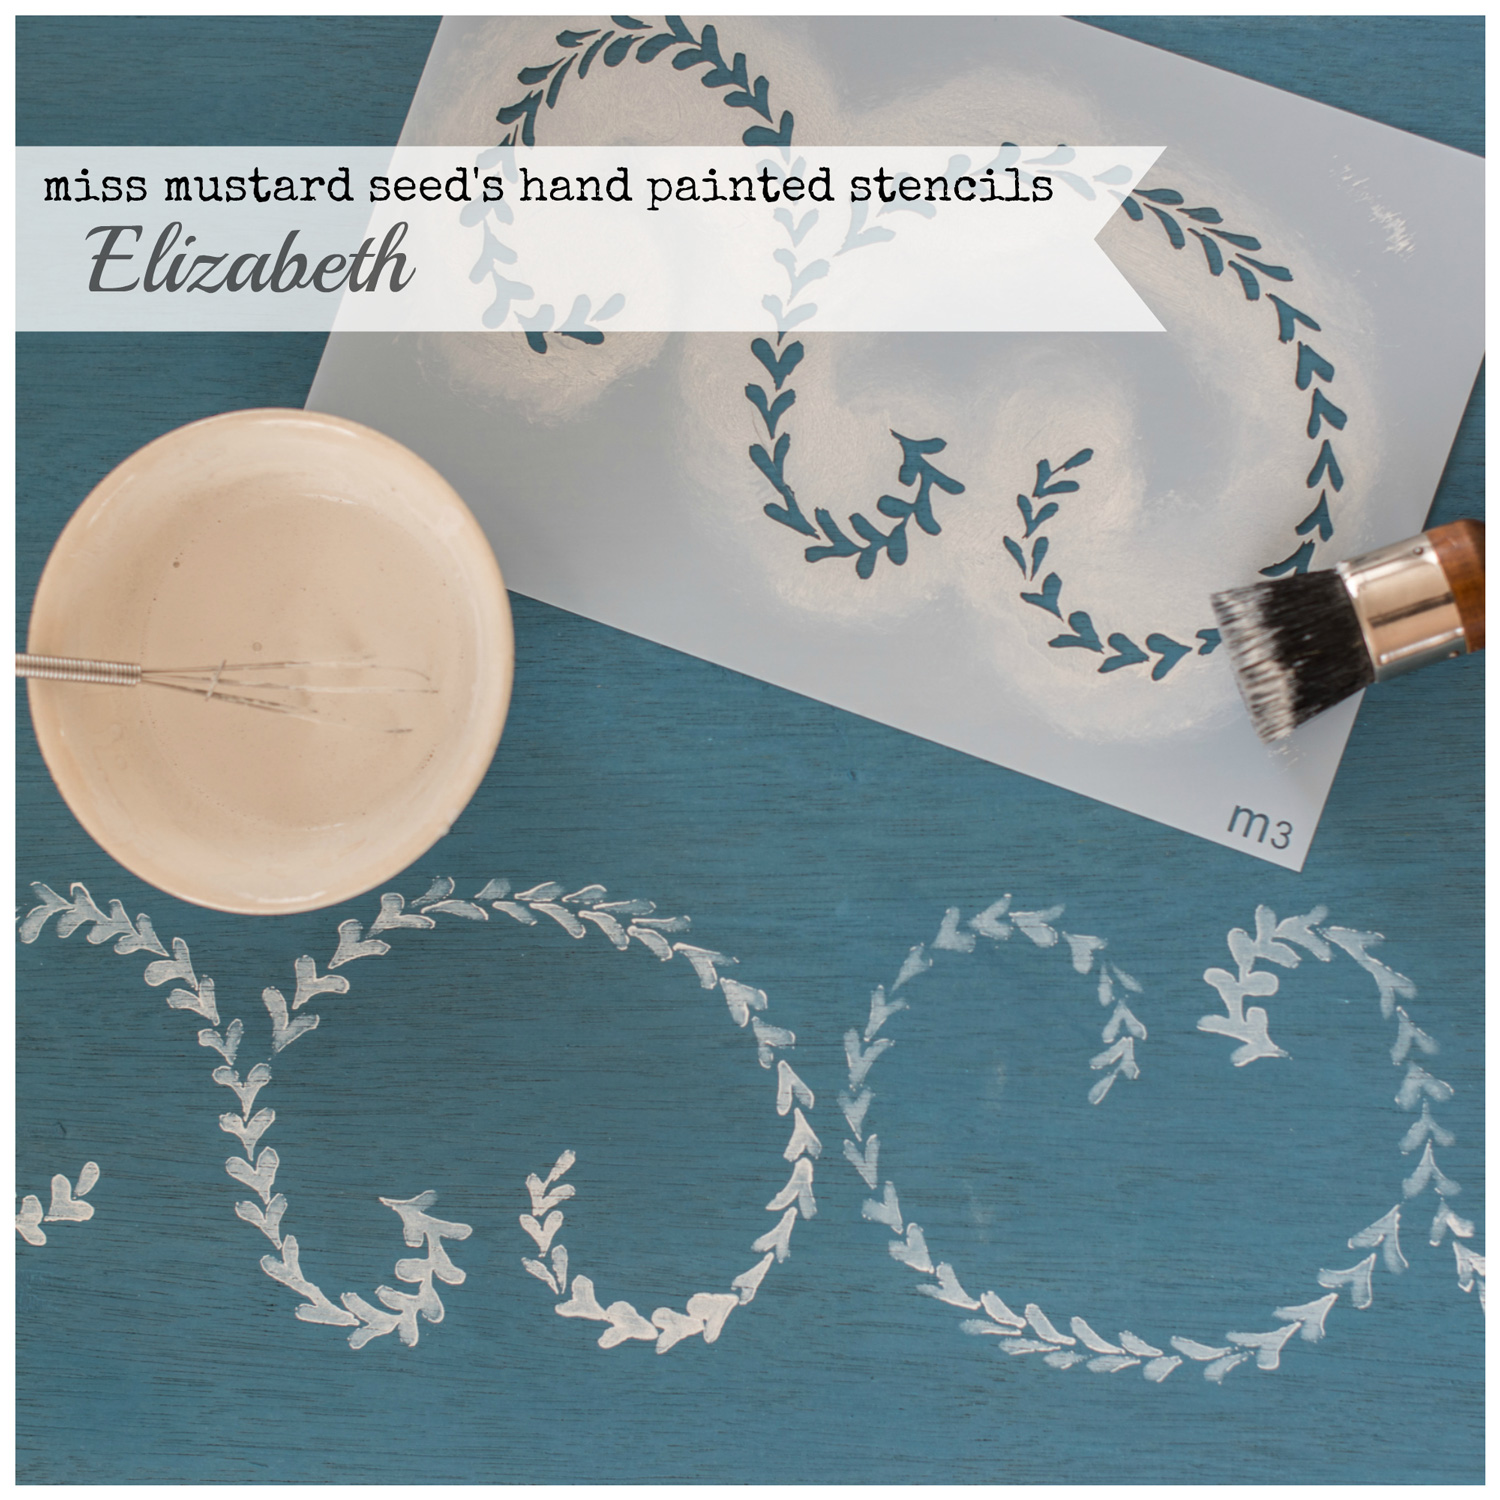 Miss Mustard Seed's hand painted stencils are available at My Painted Door. This stencil is the Elizabeth design.